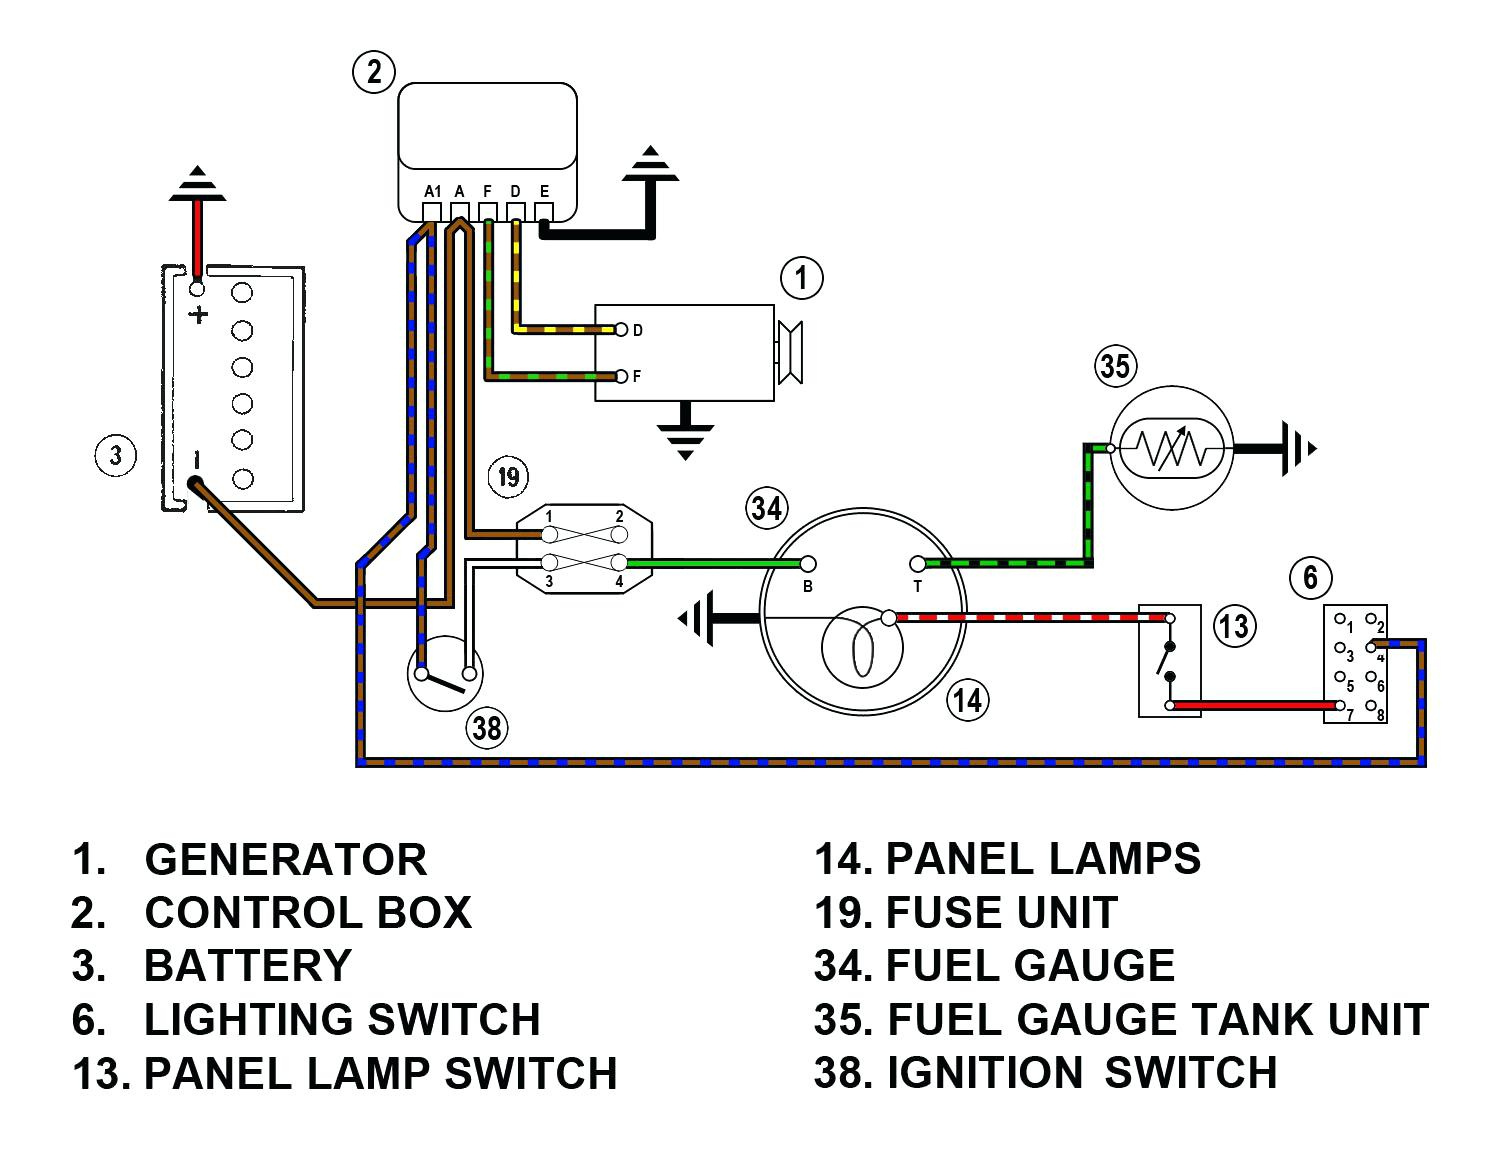 Wiring Diagram For Pj Gooseneck Trailer